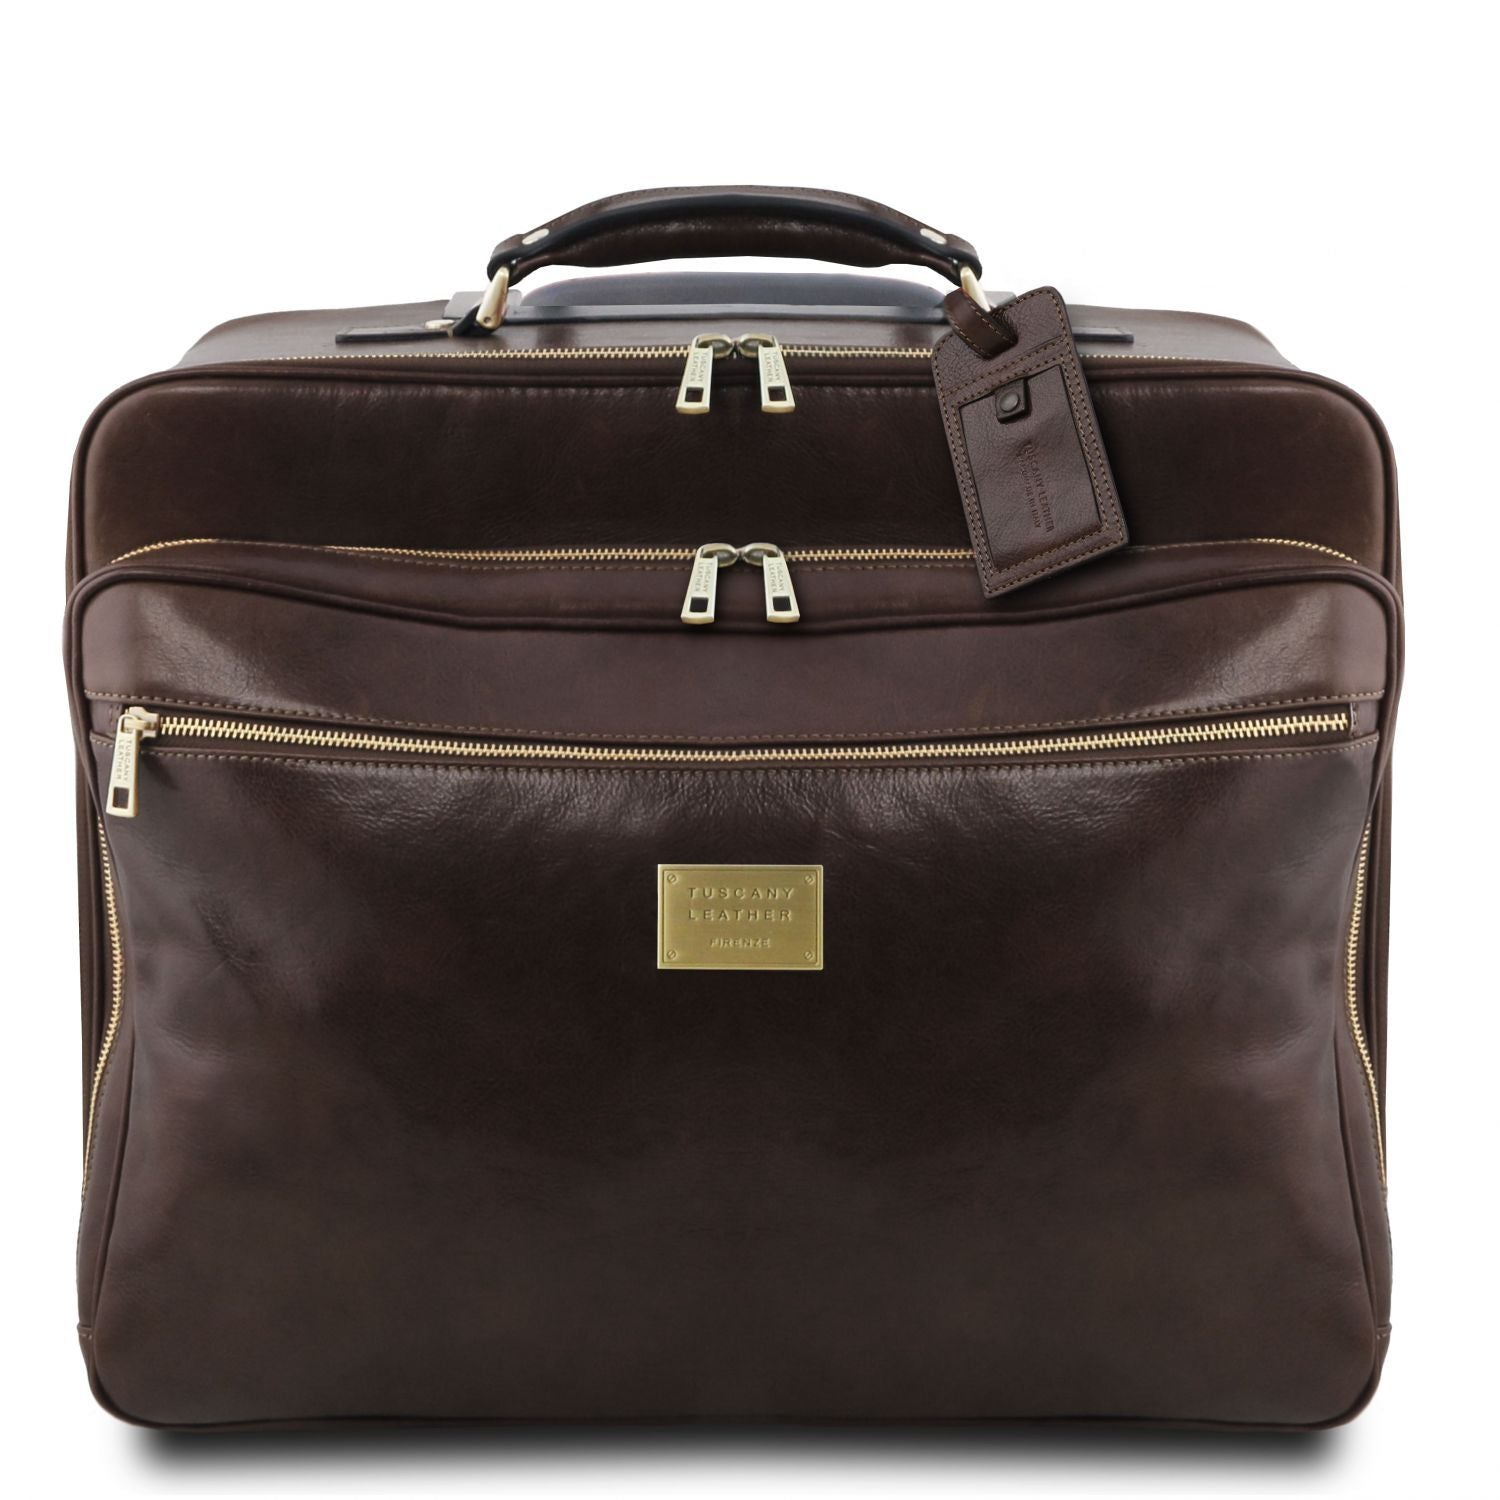 Varsavia - Leather pilot case with two wheels (TL141888) - Leather Wheeled luggage | DILUSSOBAGS